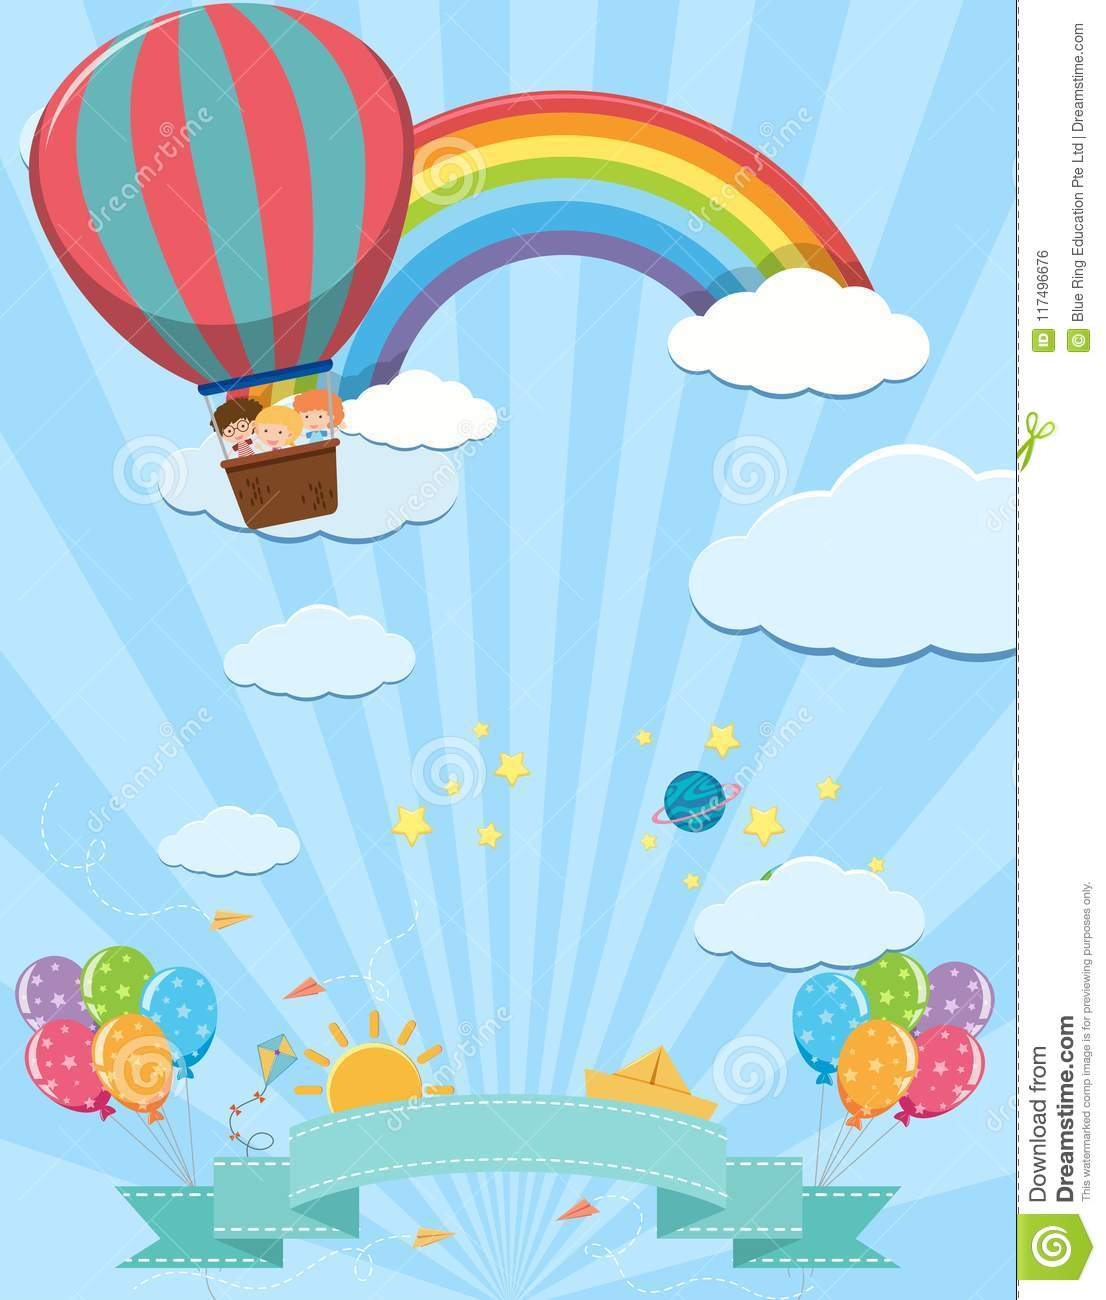 Cute Template With Kids On Hot Air Balloon Stock Vector ...